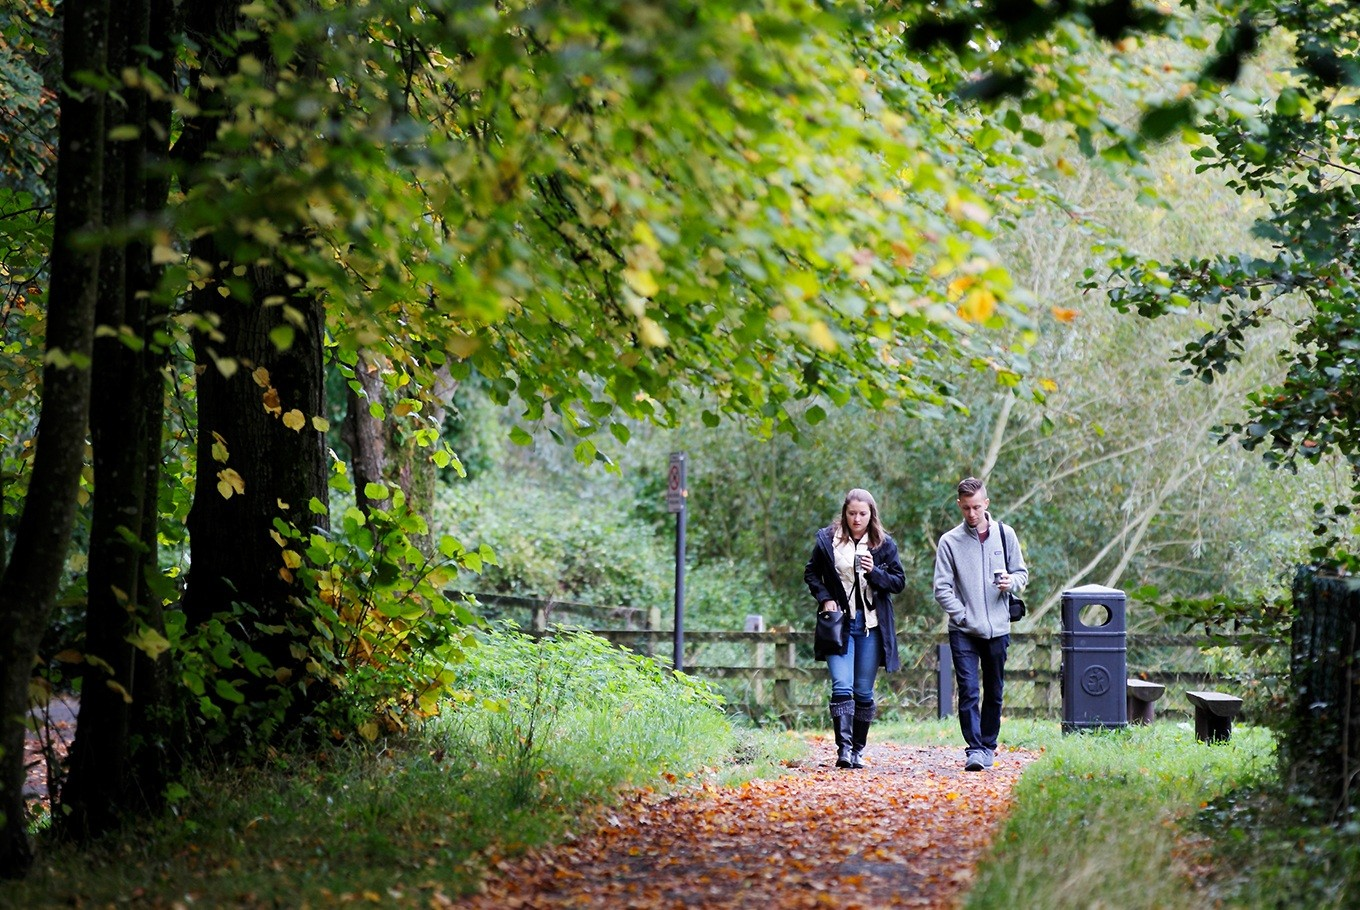 In contrast to the delightful tamed urban space of St. Stephen's Green in Dublin, the Kilkenny Canal Walk, which begins just under Kilkenny Castle meanders through 1.7 impossibly green kilometers along the banks of the Nore River.